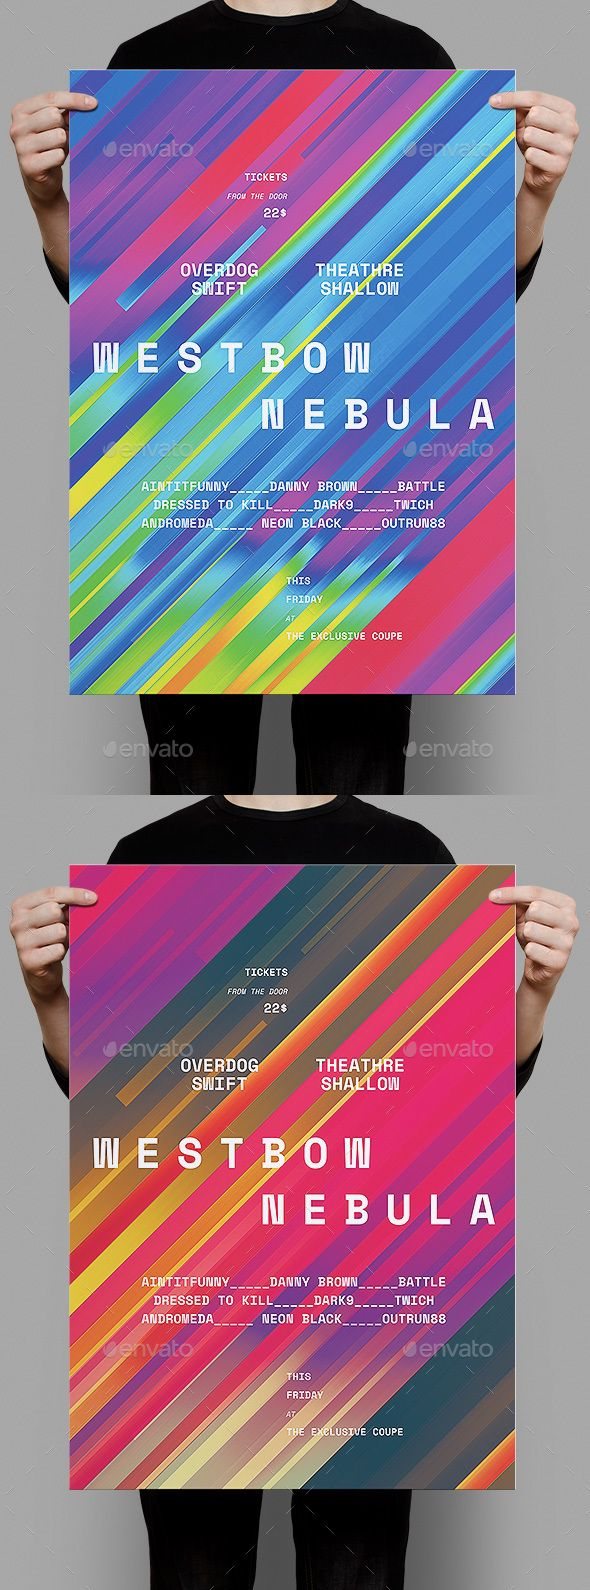 Westbow Nebula Poster / Flyer - Events Flyers